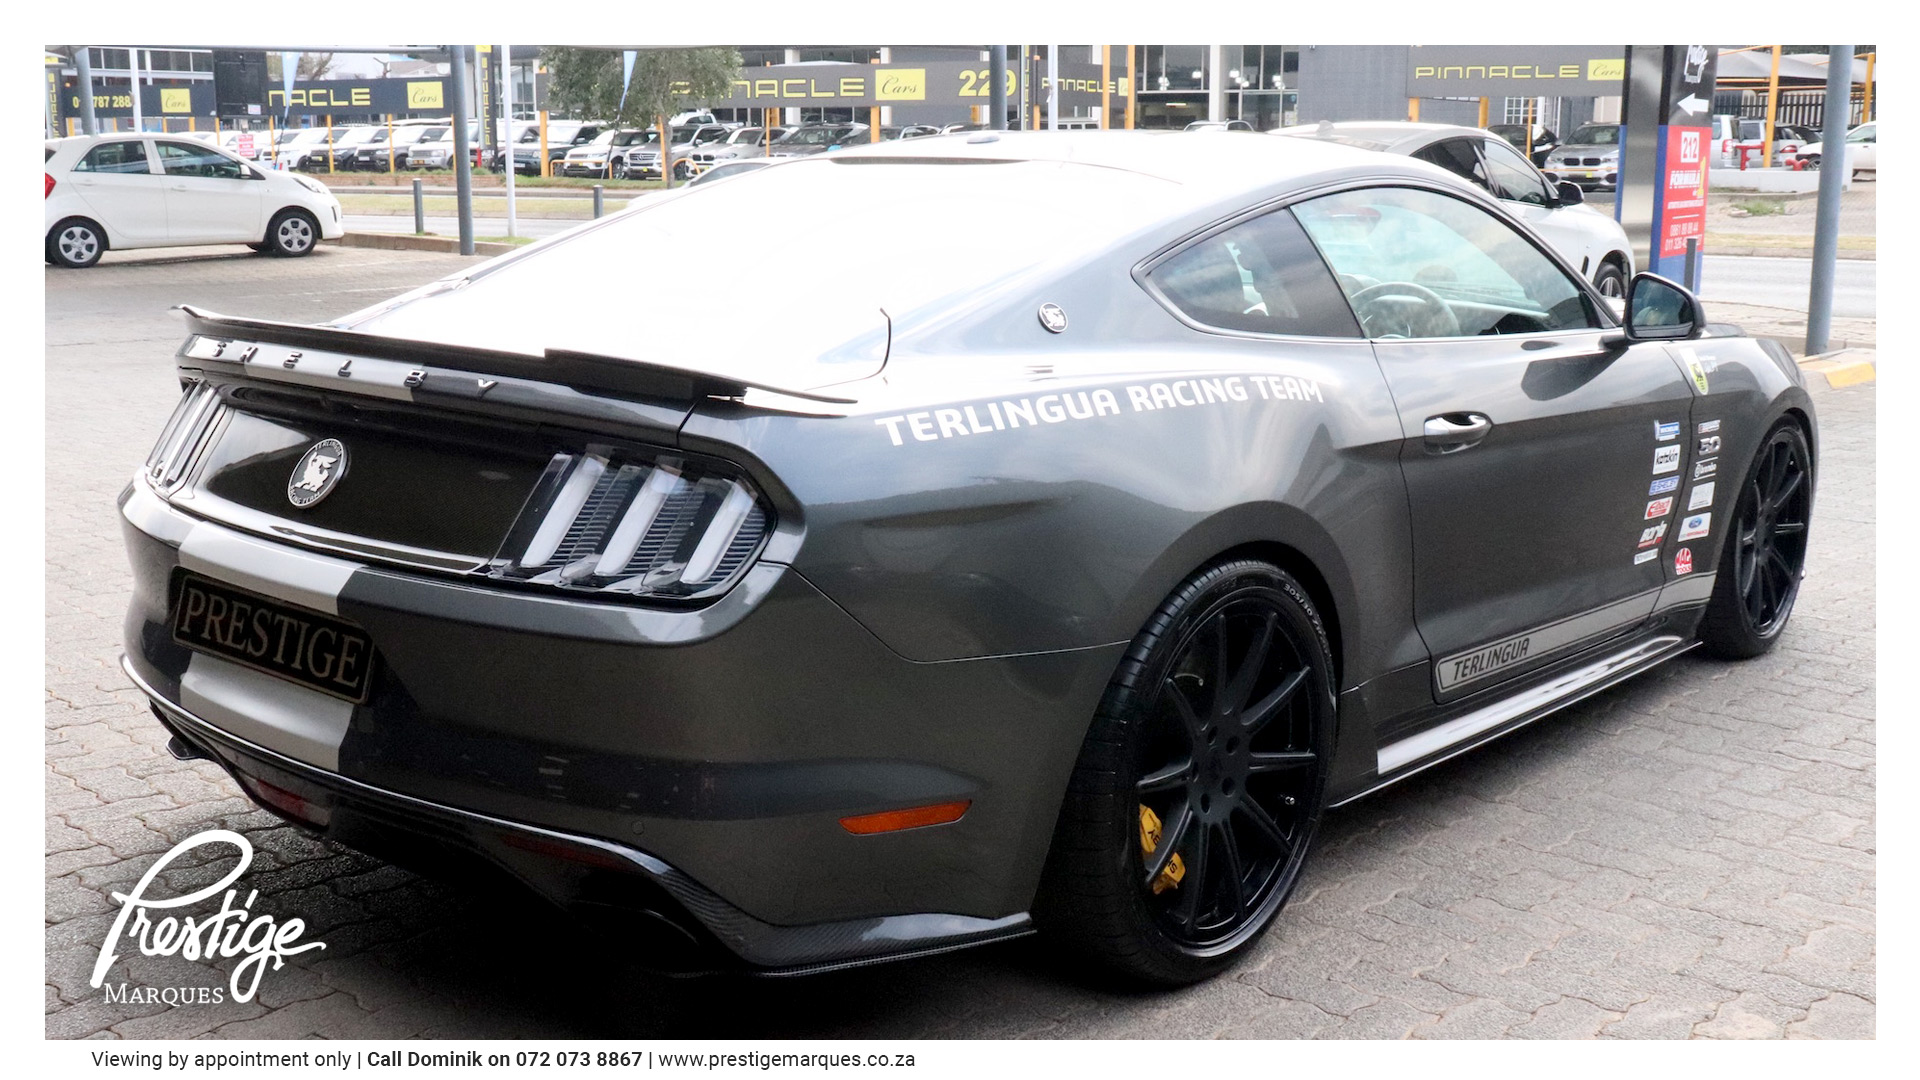 Prestige Marques   Shelby Ford Mustang Terlingua Racing Team